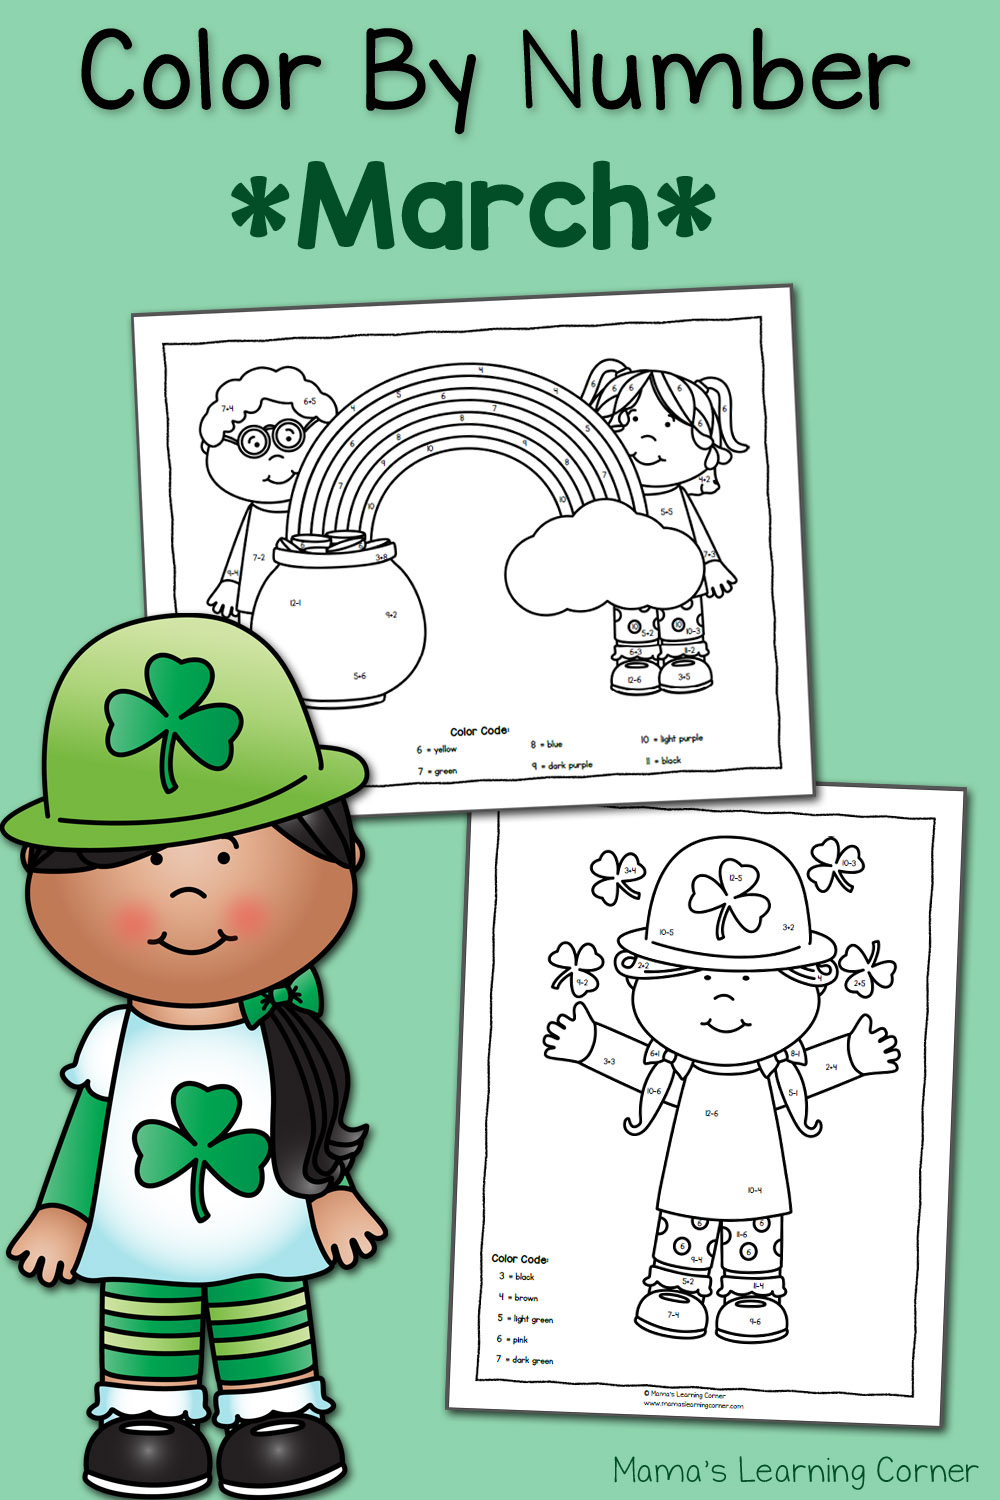 hight resolution of Color by Number Worksheets for March: St. Patrick's Day! - Mamas Learning  Corner